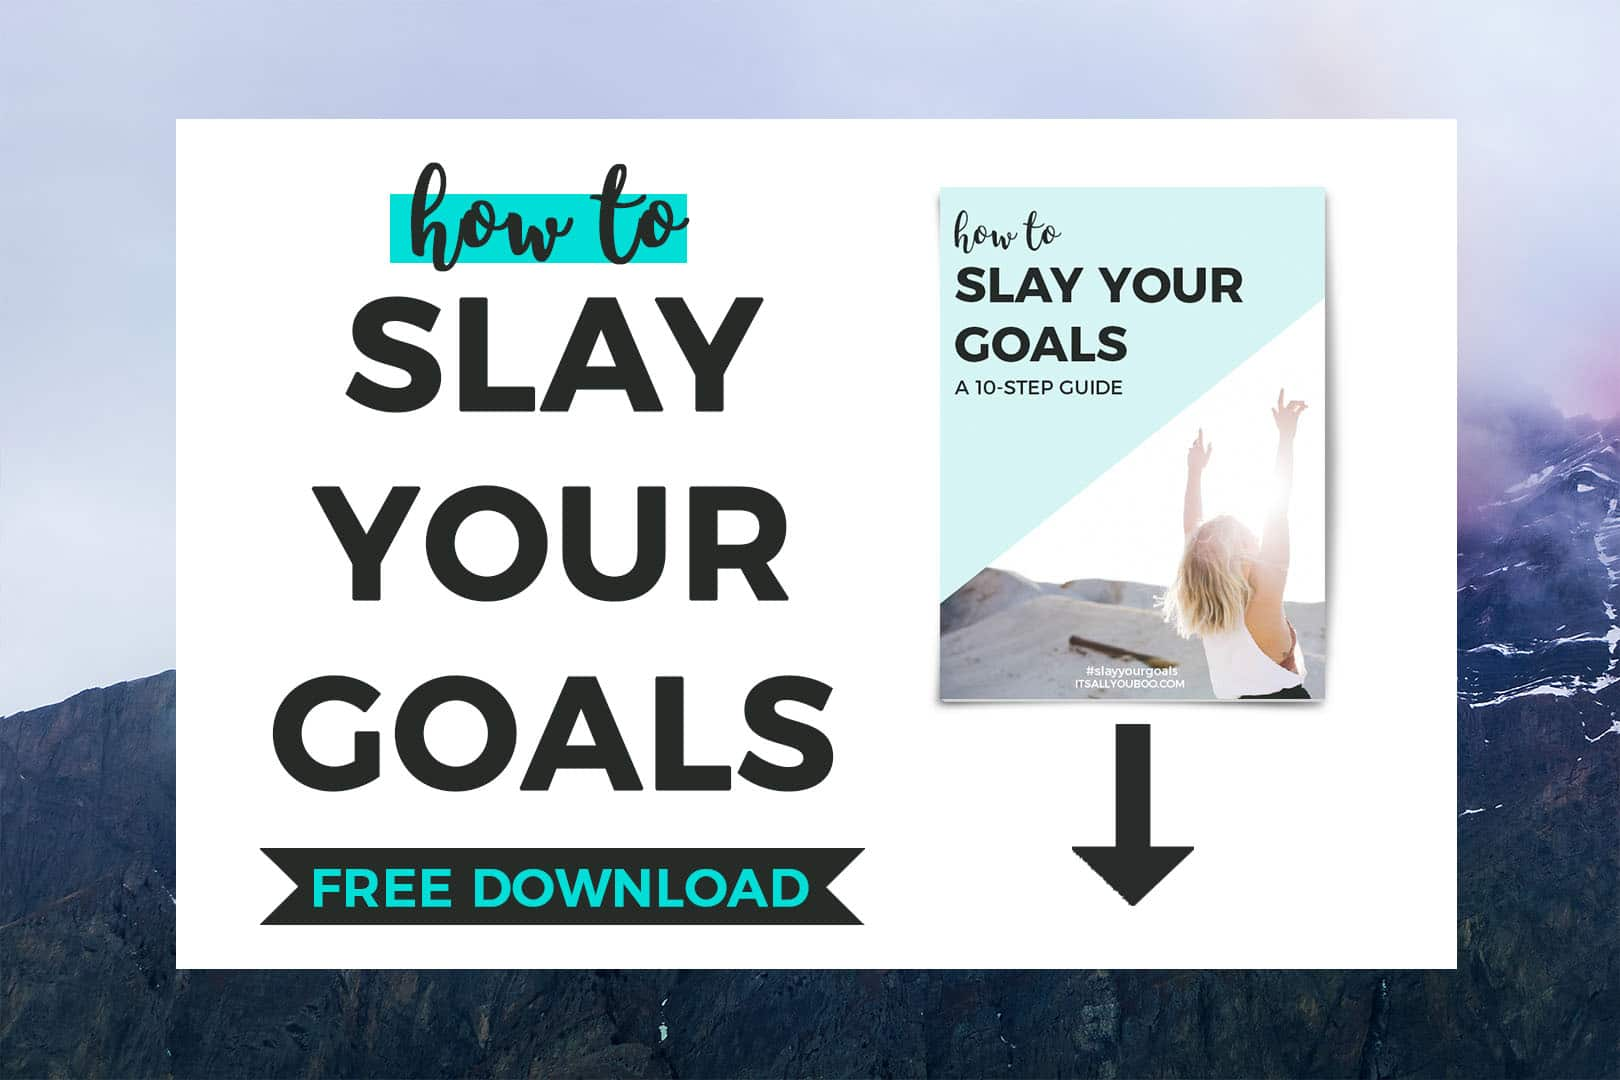 How to Slay Your Goals FREE DOWNLOAD